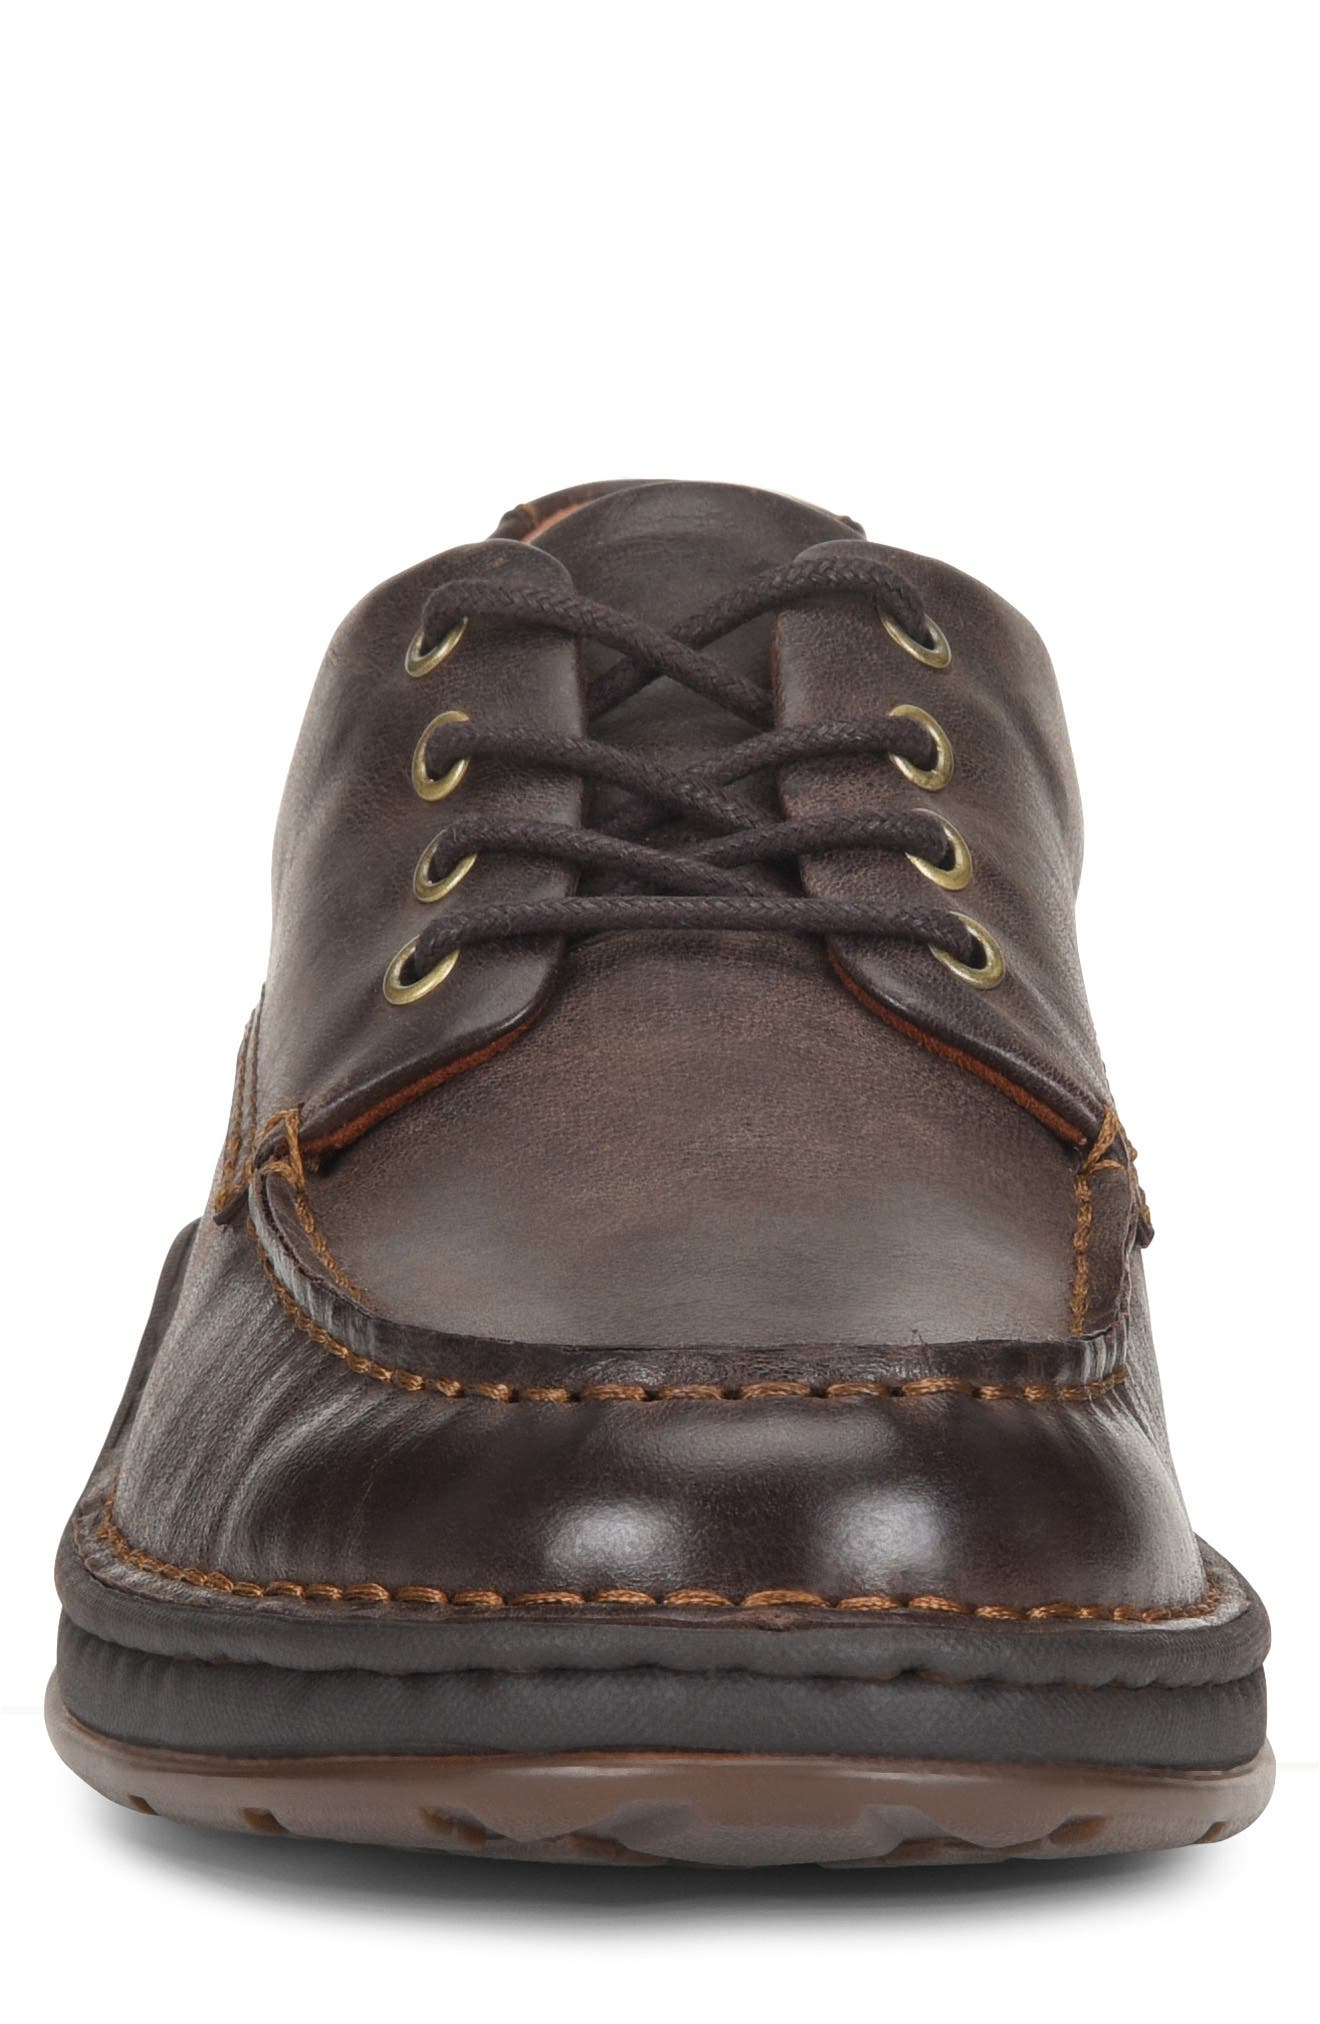 Leon Moc Toe Derby,                             Alternate thumbnail 4, color,                             DARK BROWN LEATHER